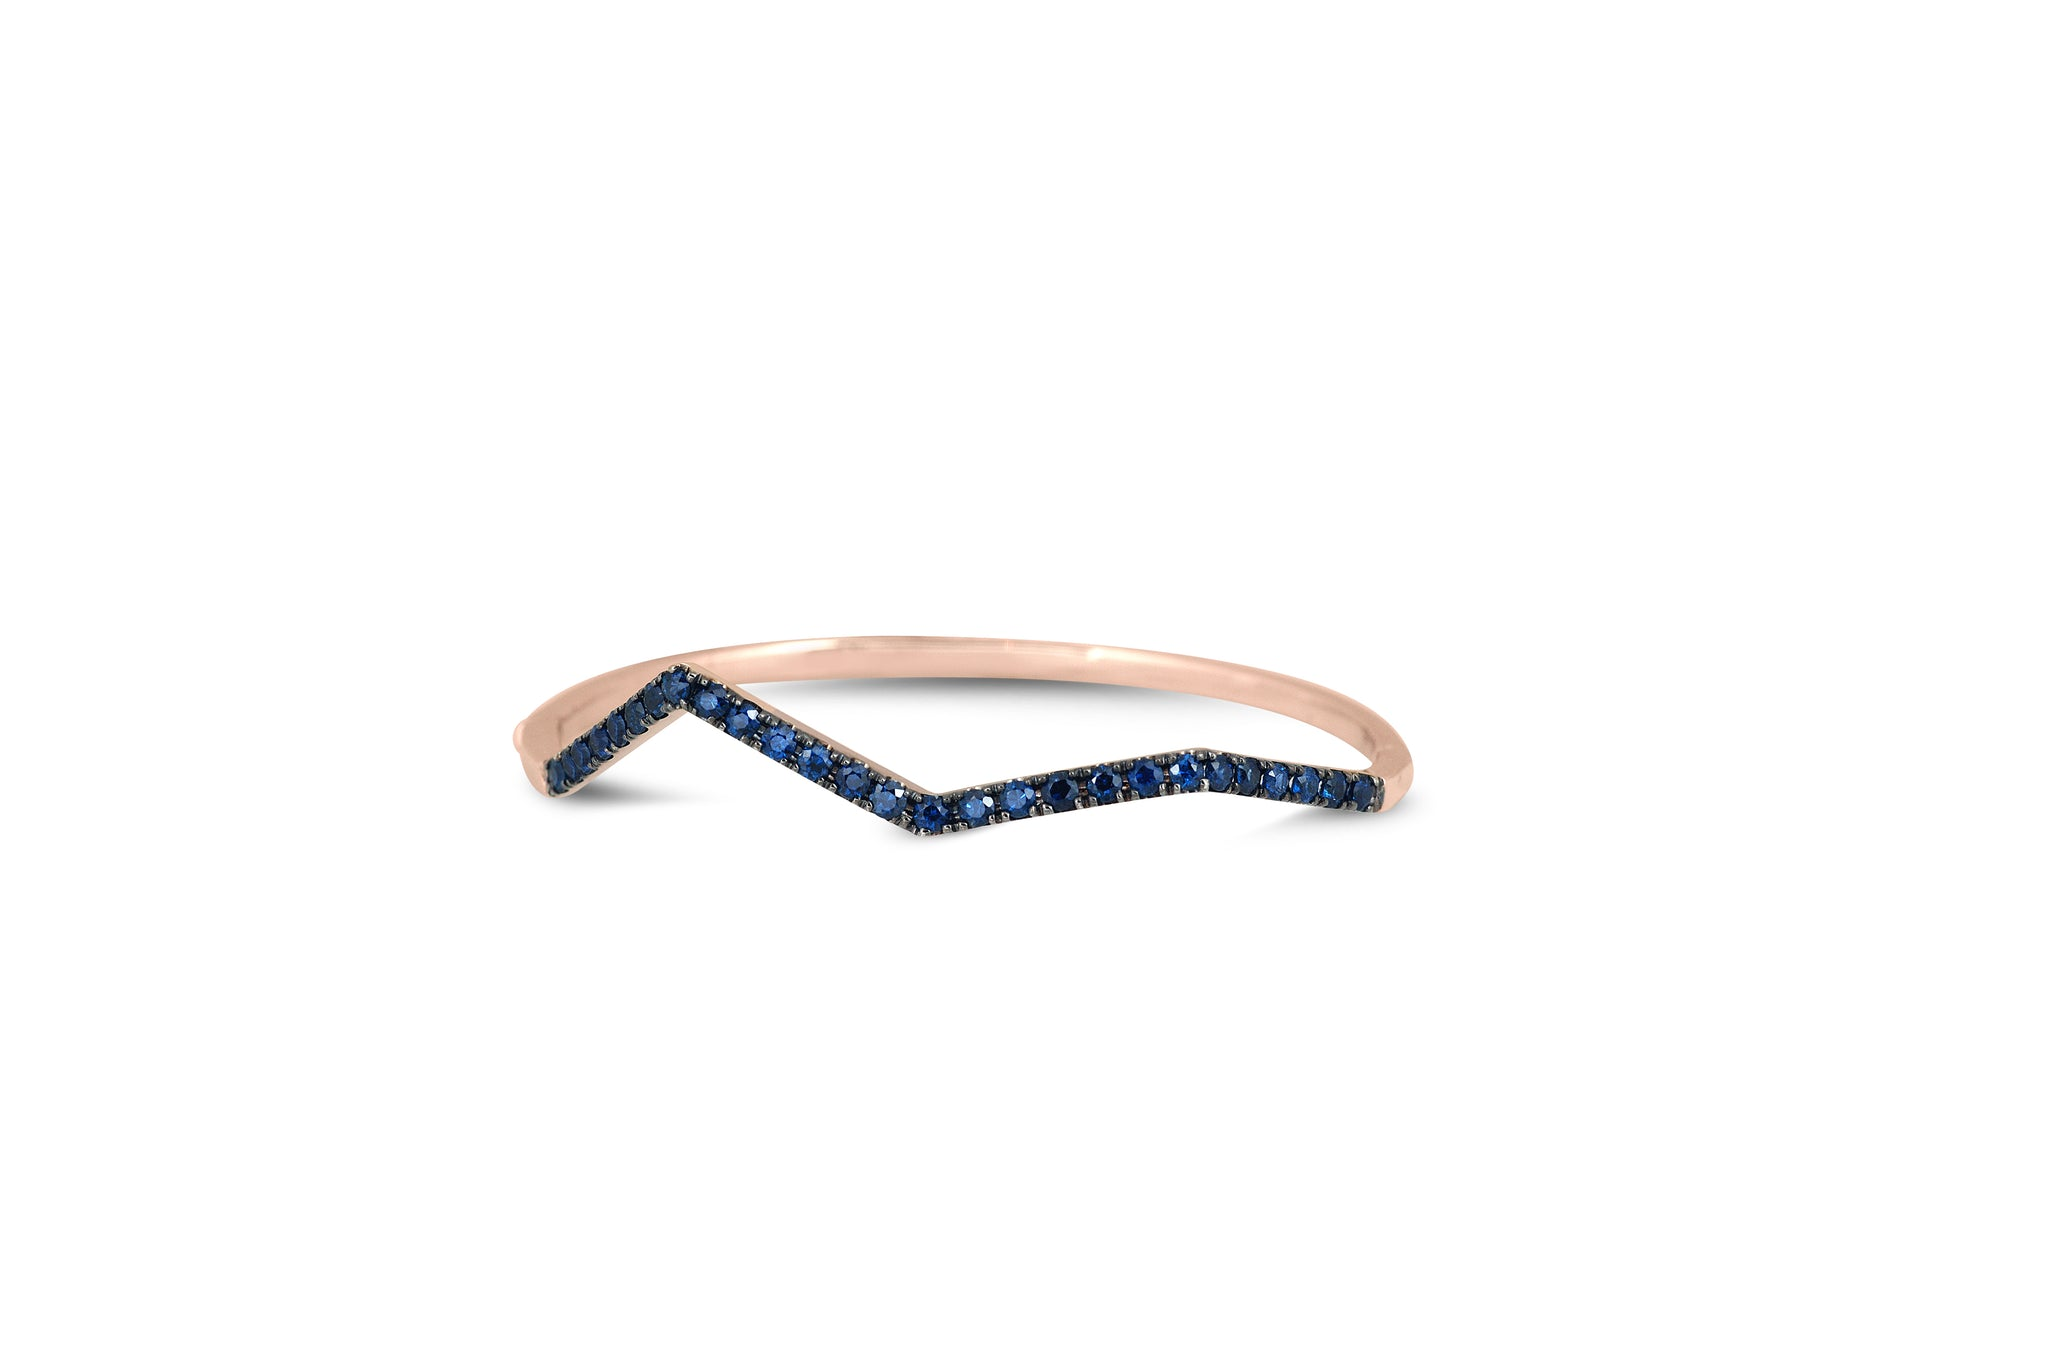 Origami Ziggy Pave Bangle in blue Sapphire